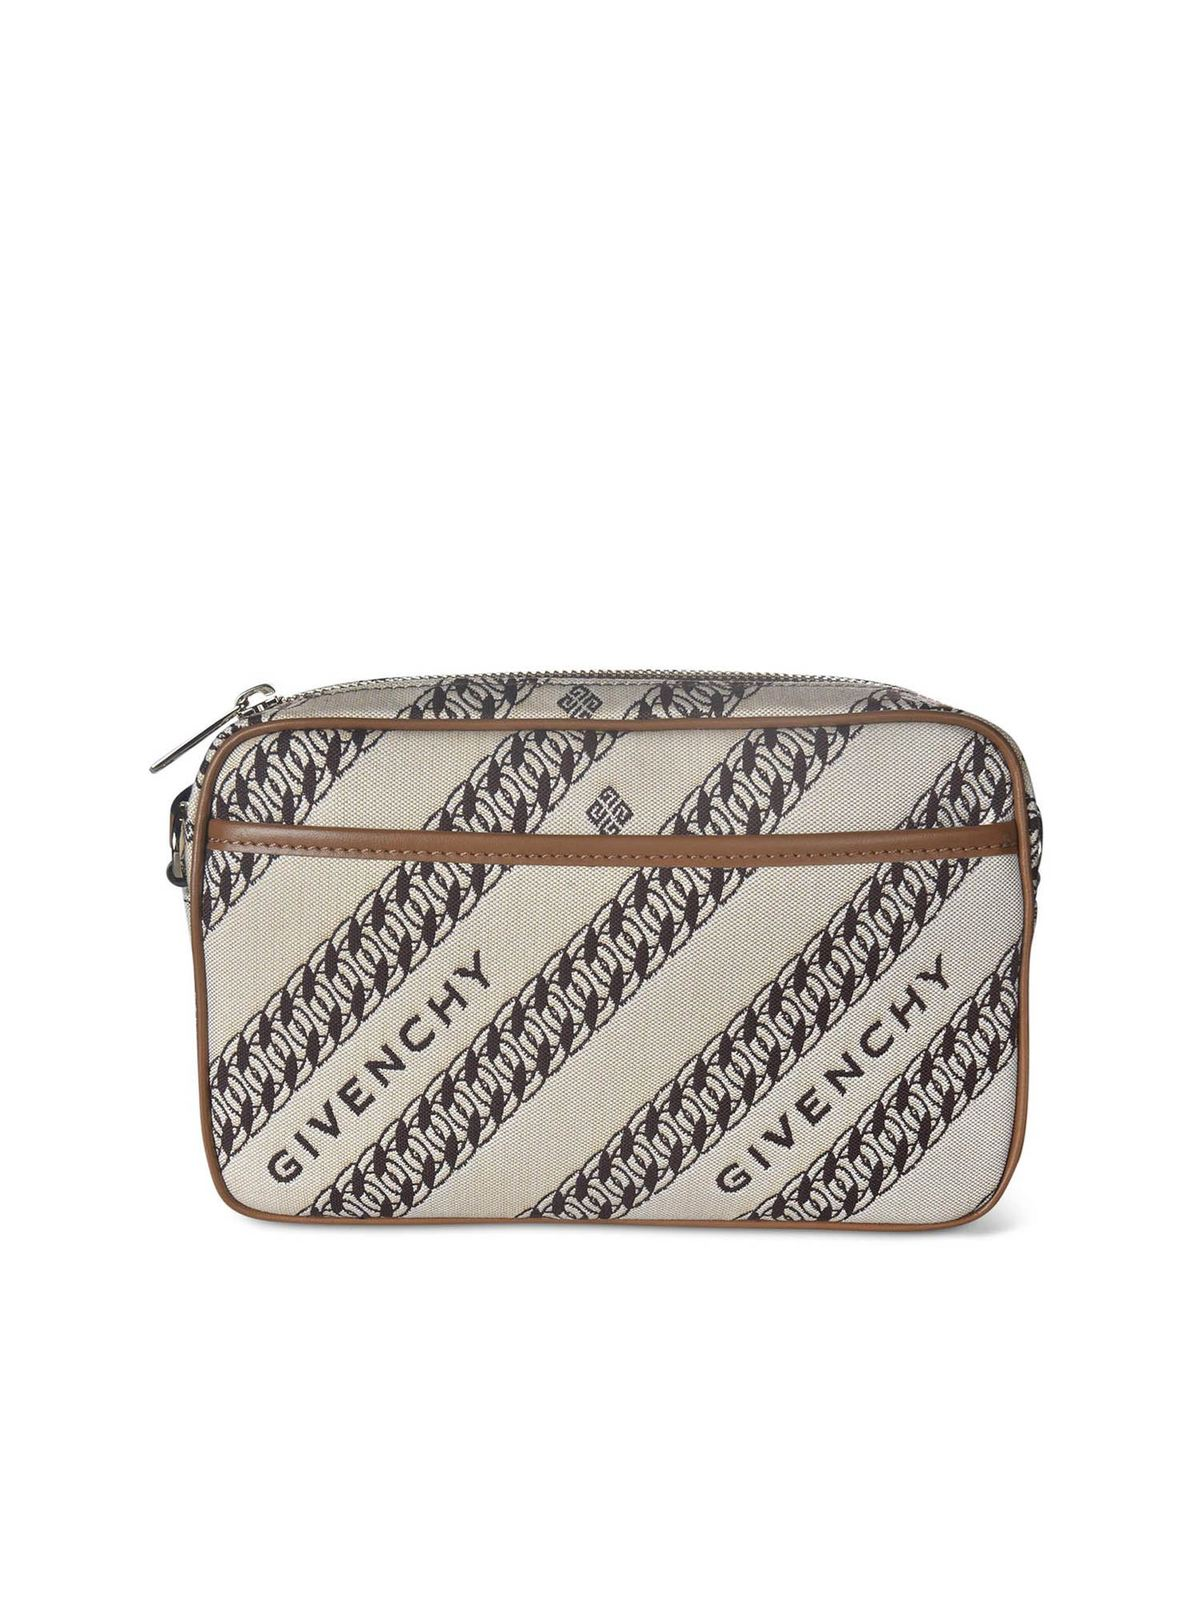 Givenchy Canvases CHAIN PRINTED SHOULDER BAG IN BEIGE